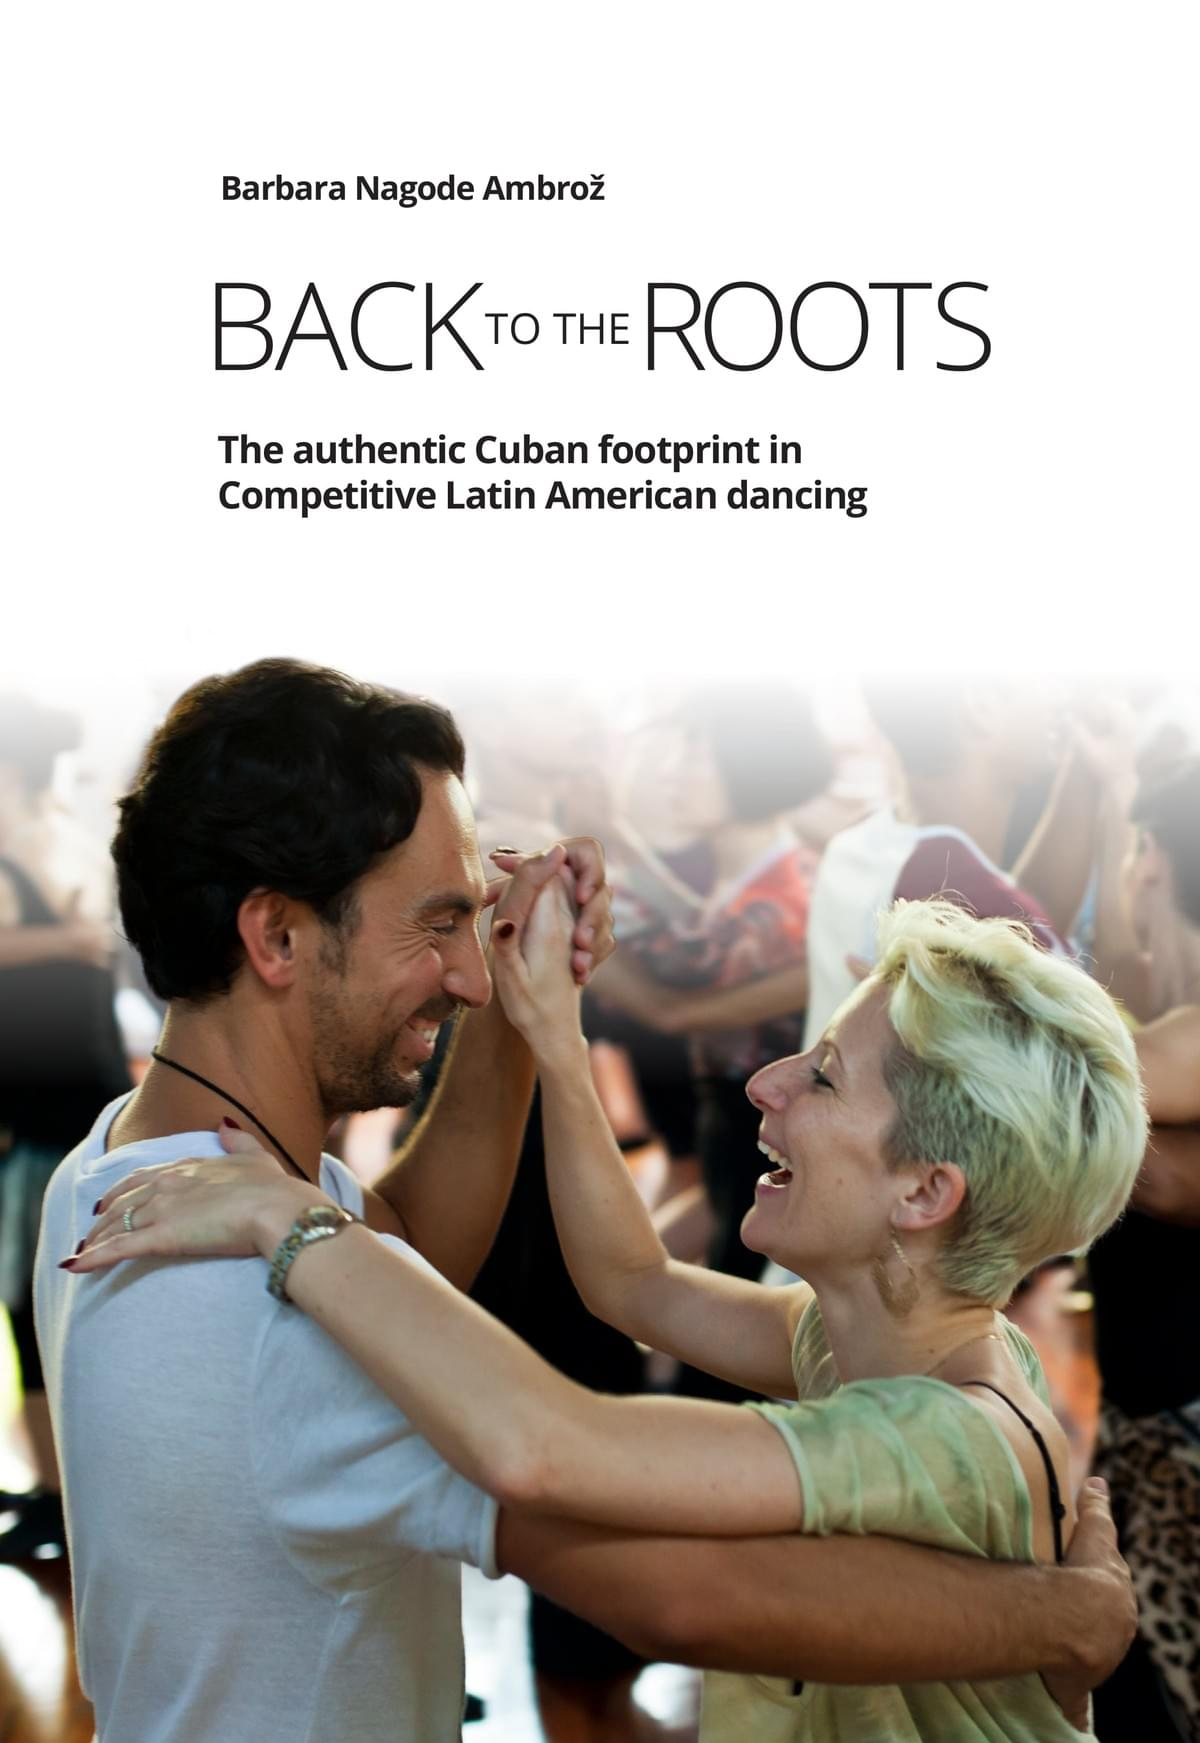 Book BACK TO THE ROOTS: The authentic Cuban footprint in competitive Latin American dancing by Barbara Nagode Ambroz